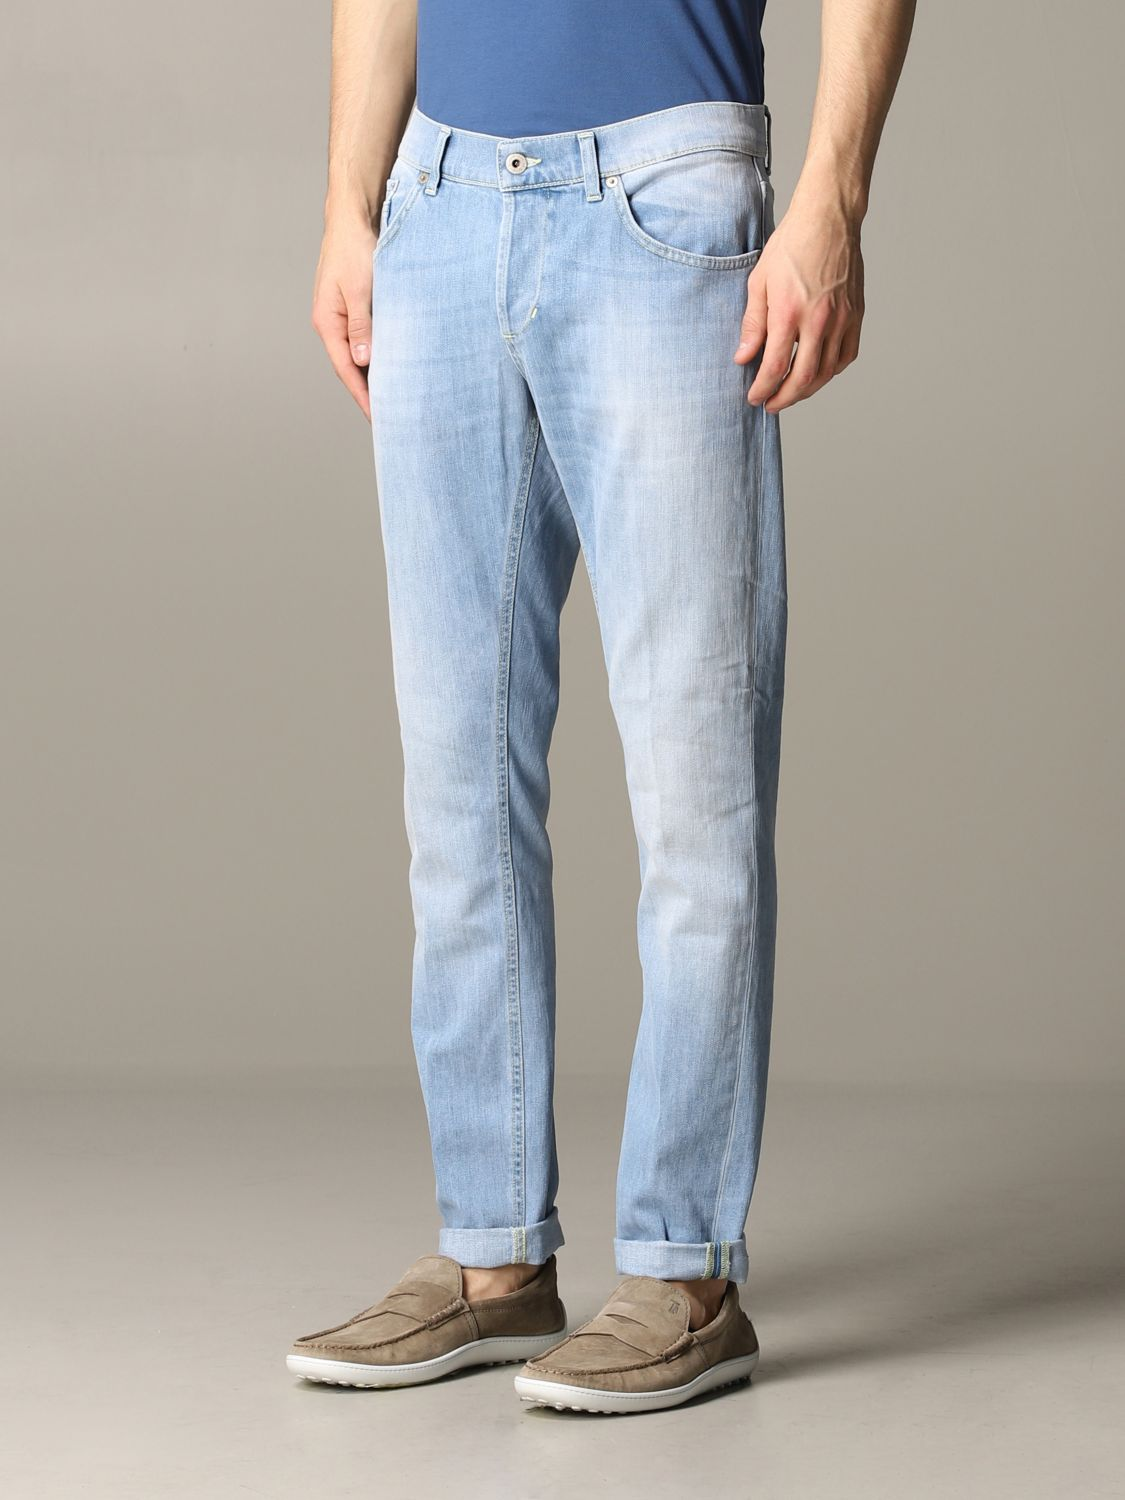 Jeans Dondup: Ritchie Dondup Slim Fit Jeans stone washed 4